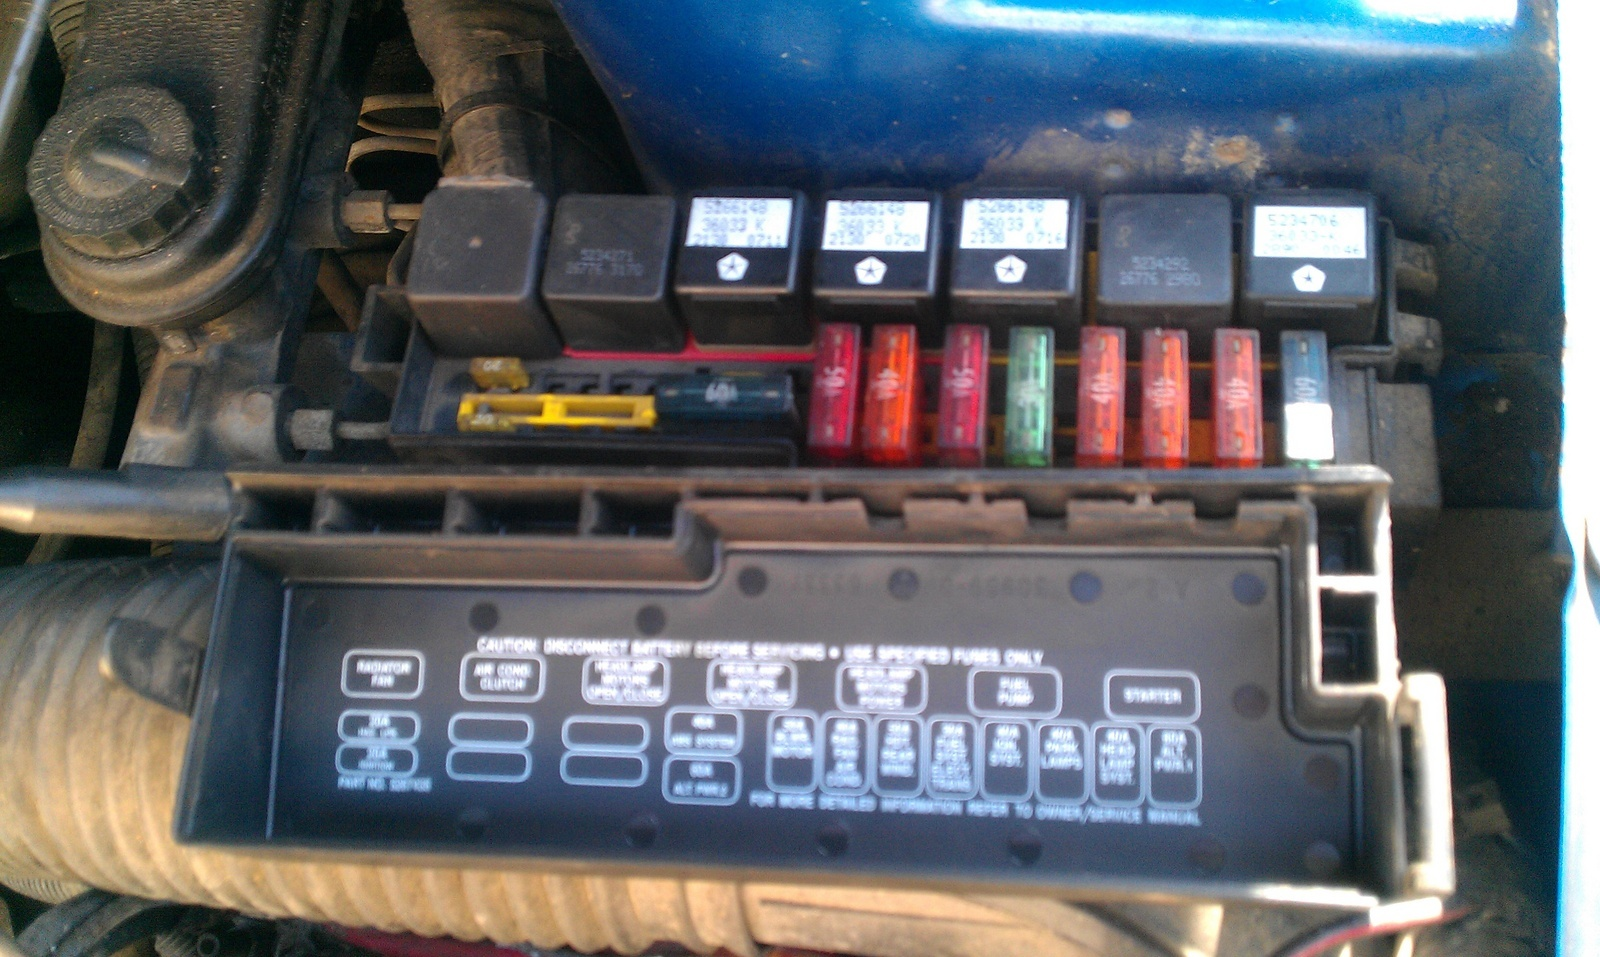 1998 Lexus Gs300 Fuse Box Diagram Wiring Library 1992 Chevy Dodge Daytona Questions My Fuel Pump Stays On After I Turn The Car Off What